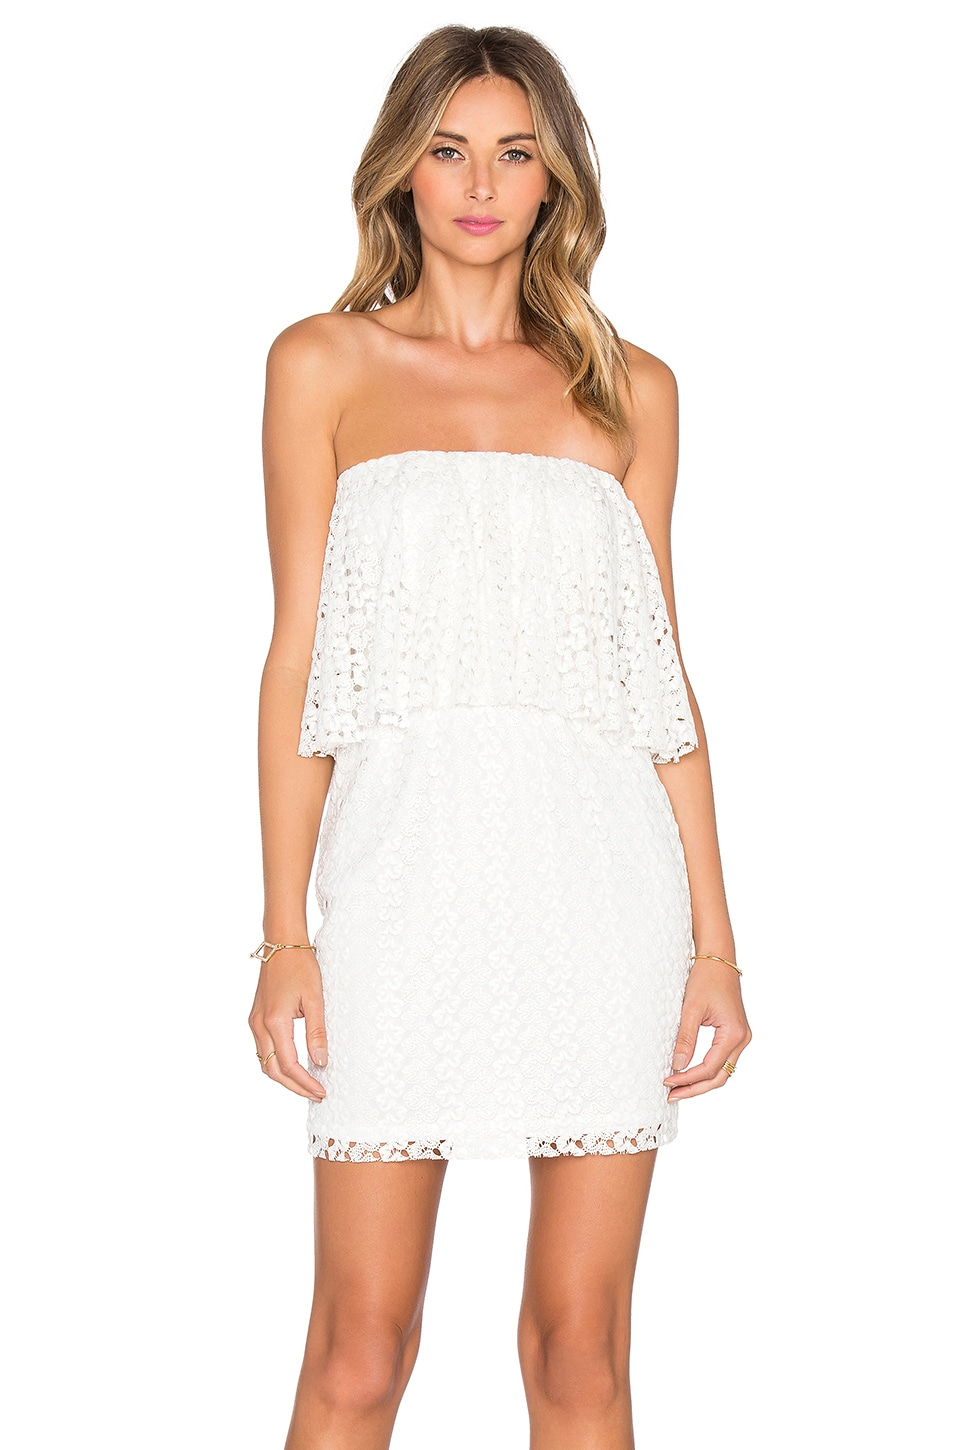 Strapless Ruffle Mini Dress